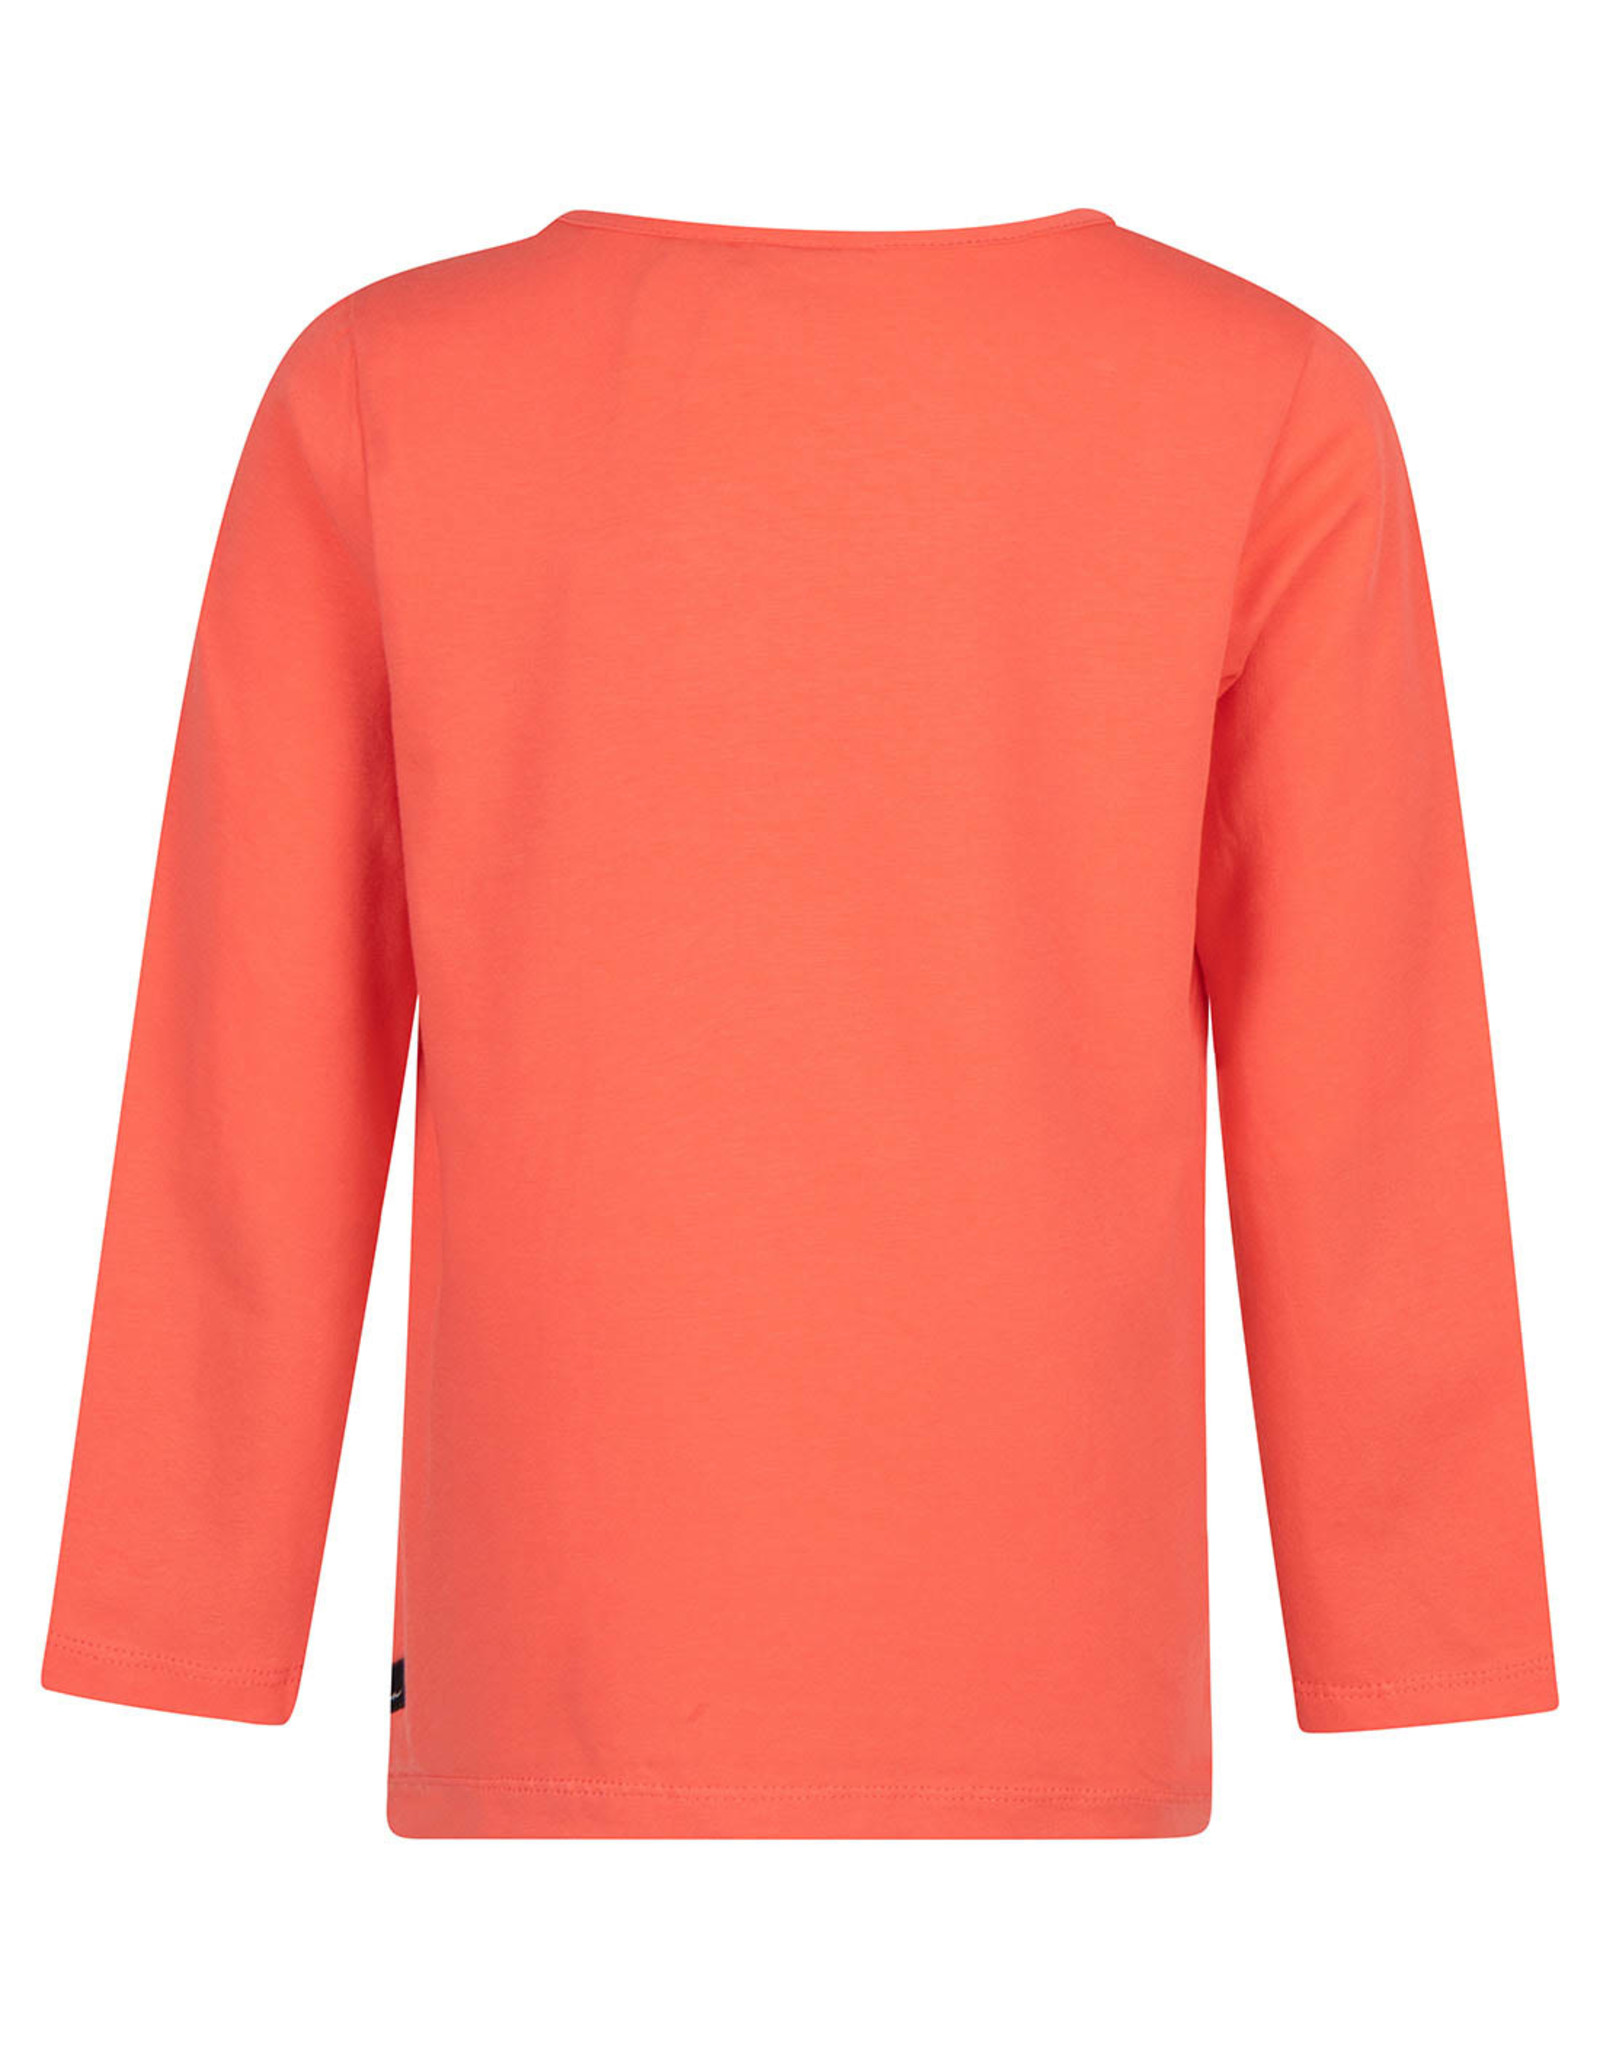 Daily7 Daily7 jongens shirt Make Some Noice Coral Red